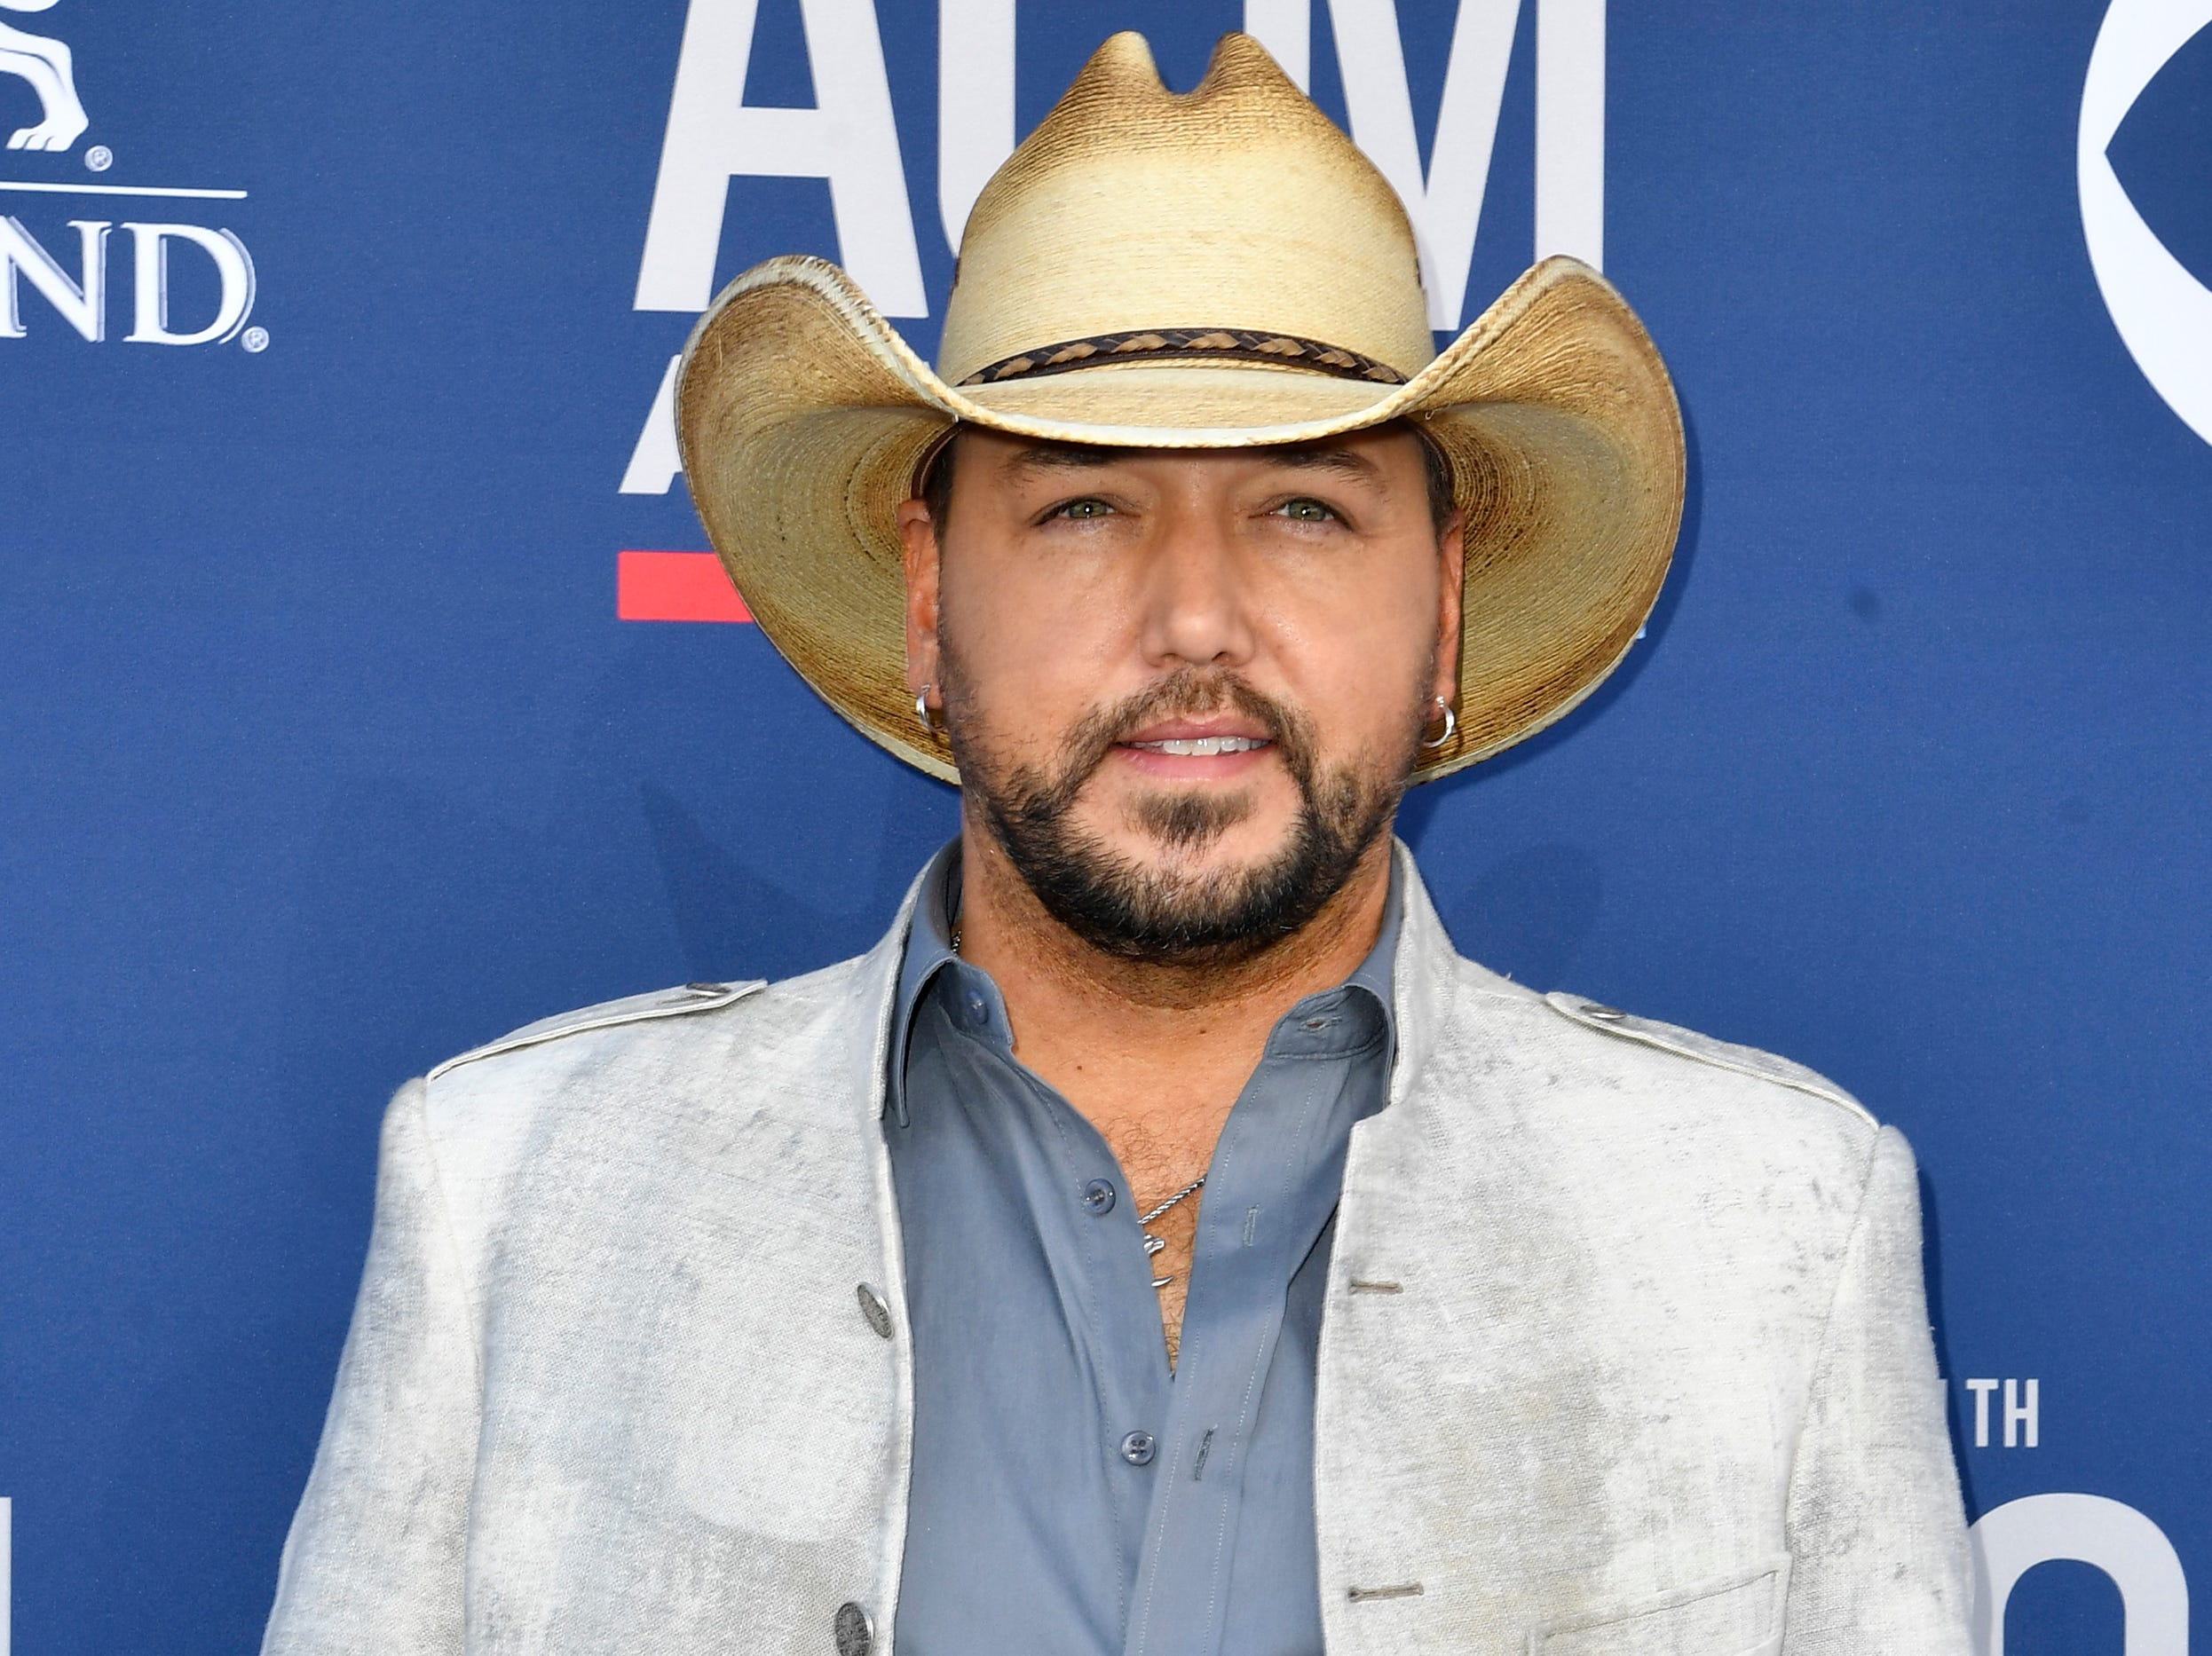 Jason Aldrean walks the red carpet at the 54TH Academy of Country Music Awards Sunday, April 7, 2019, in Las Vegas, Nev.